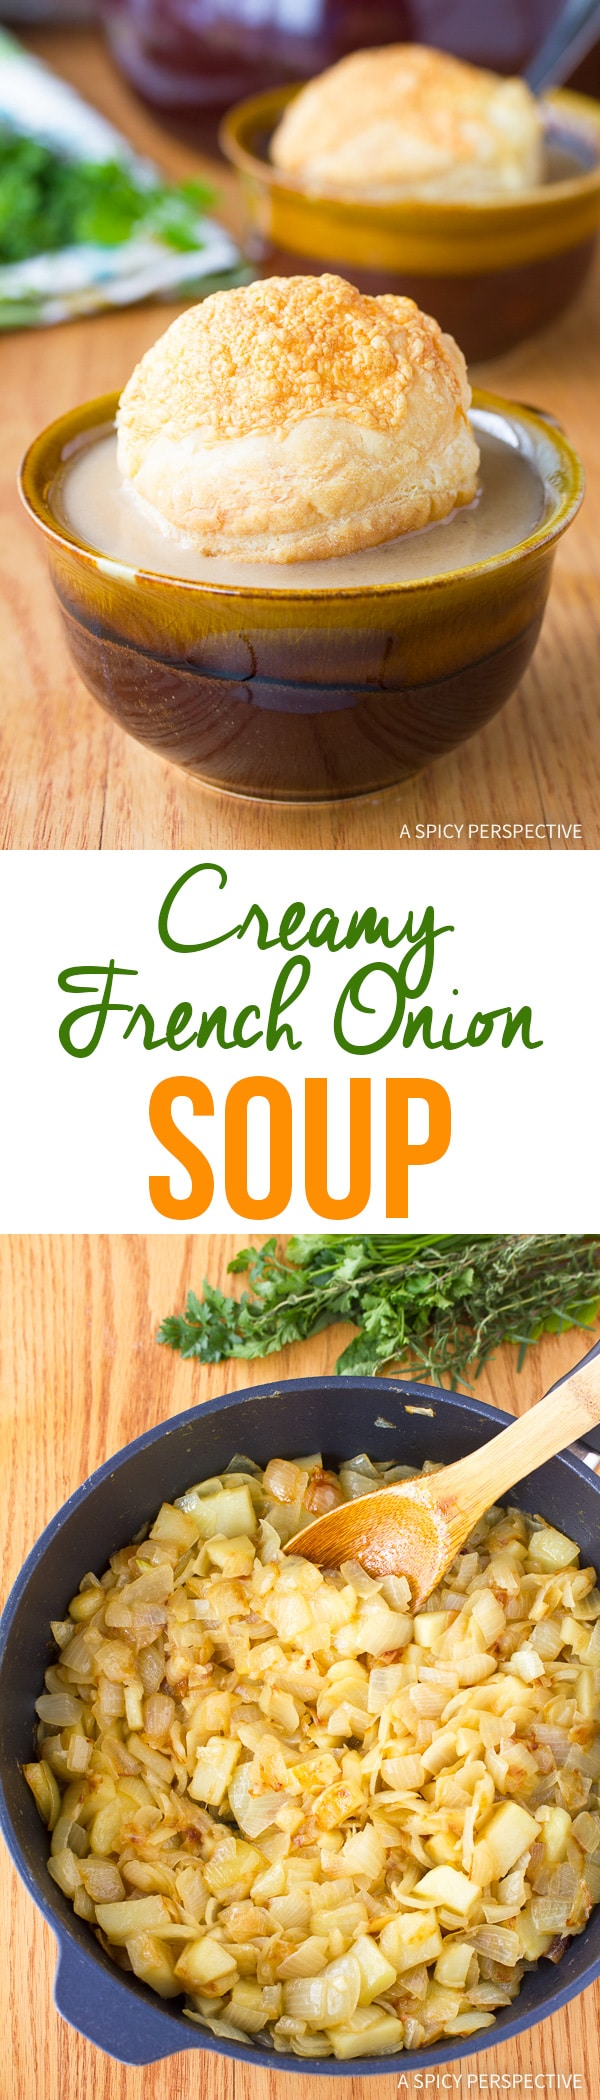 Dazzling Creamy French Onion Soup Recipe